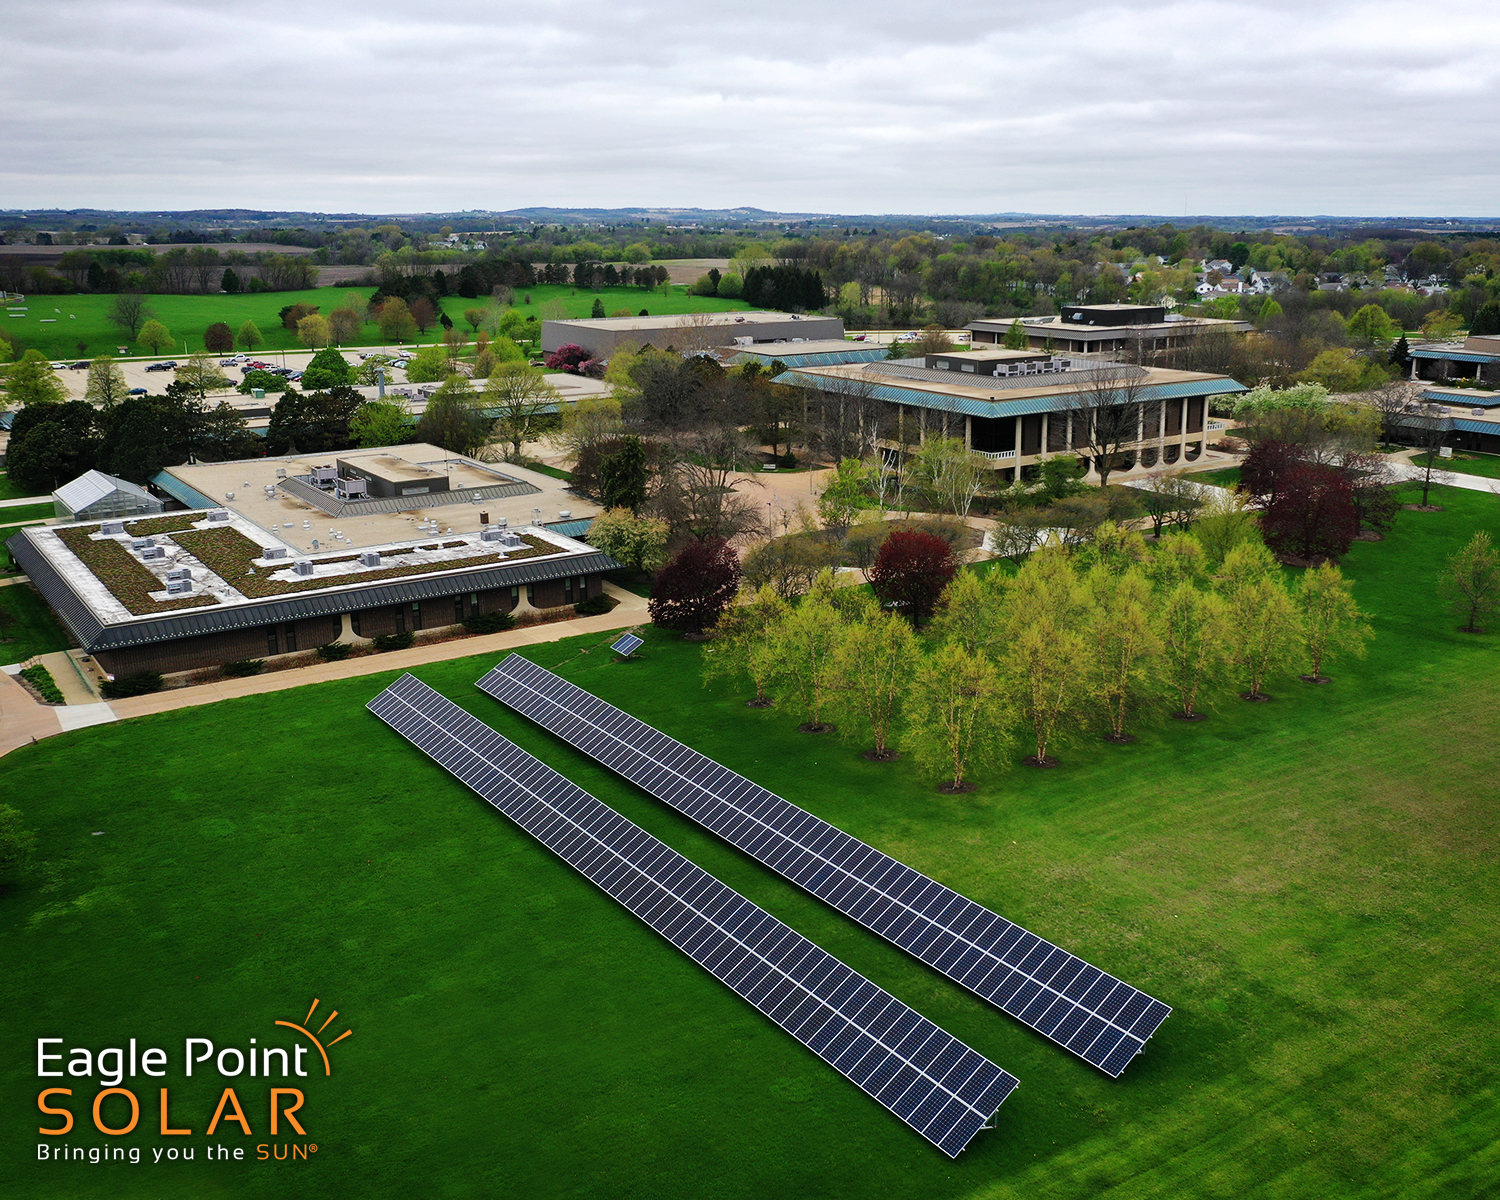 Photo of a ground mounted solar array